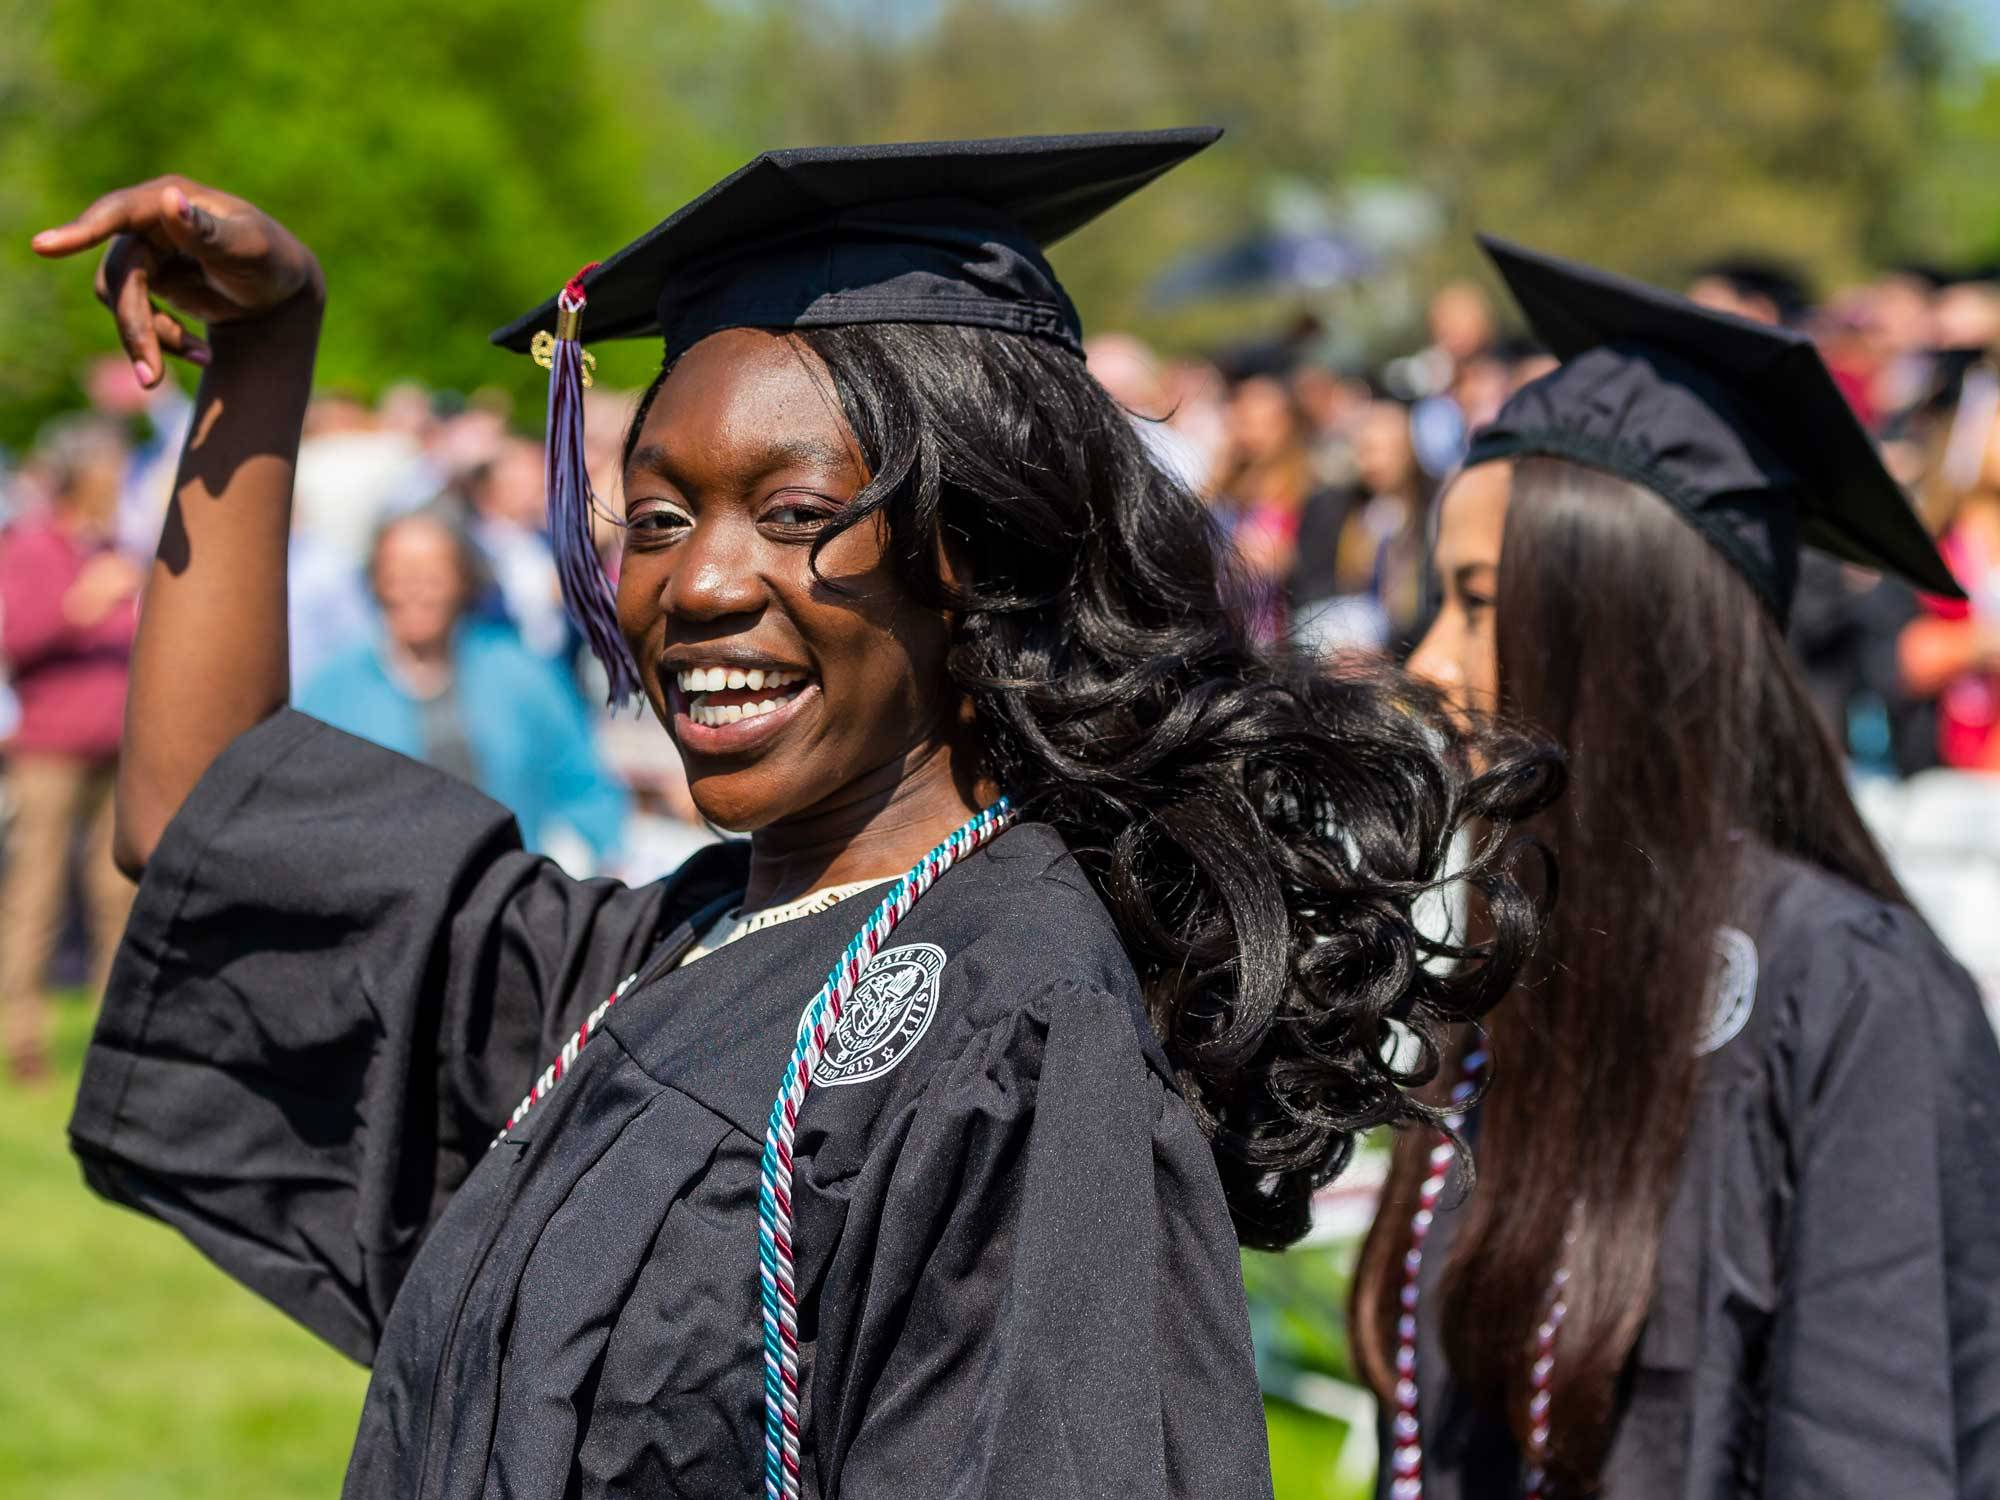 Graduates celebrate at commencement 2019